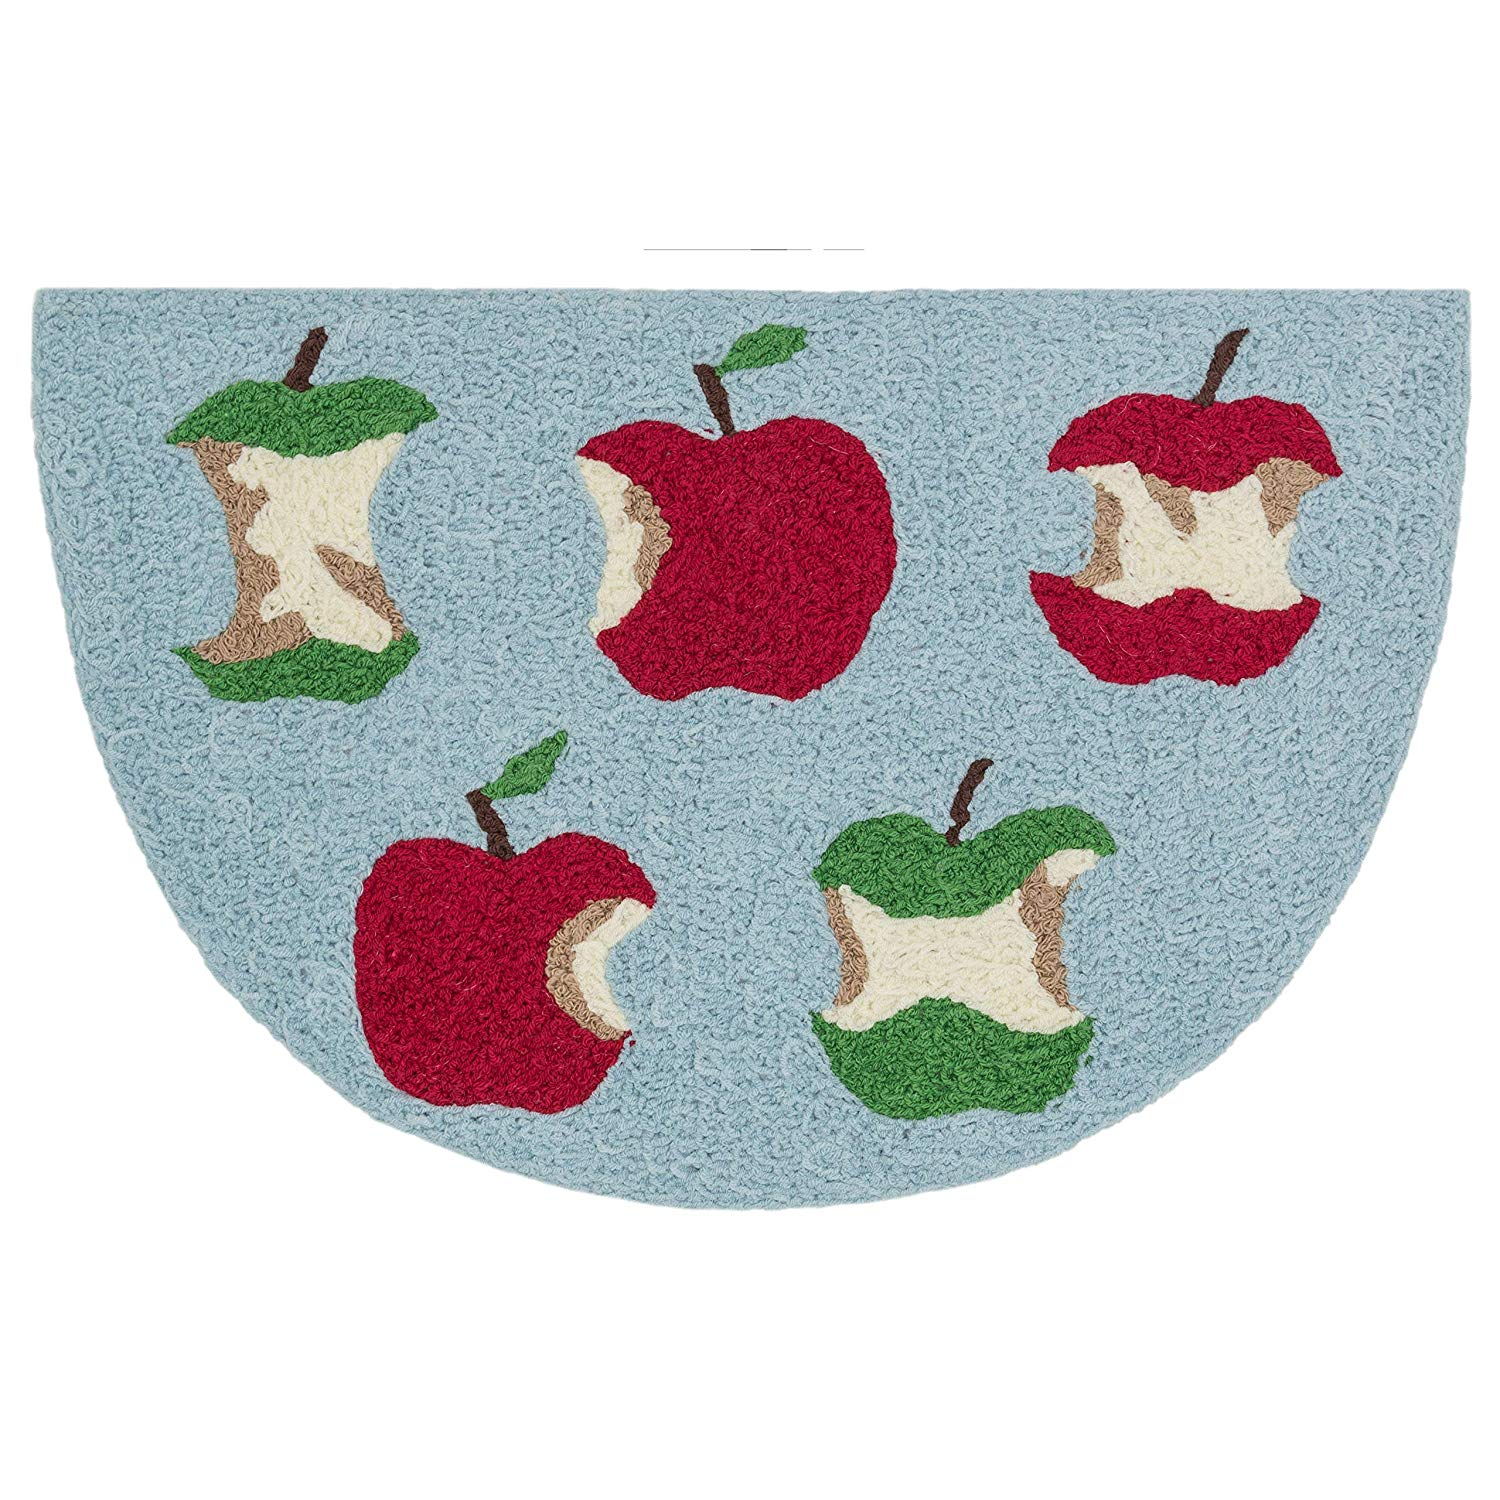 Childrens Semicircle Rug Apple Theme Food Fruit Half Circle Hearth Rug Green Red Apples Eaten Nature Blue Semi Circle Mat Half Moon Indoor Kids